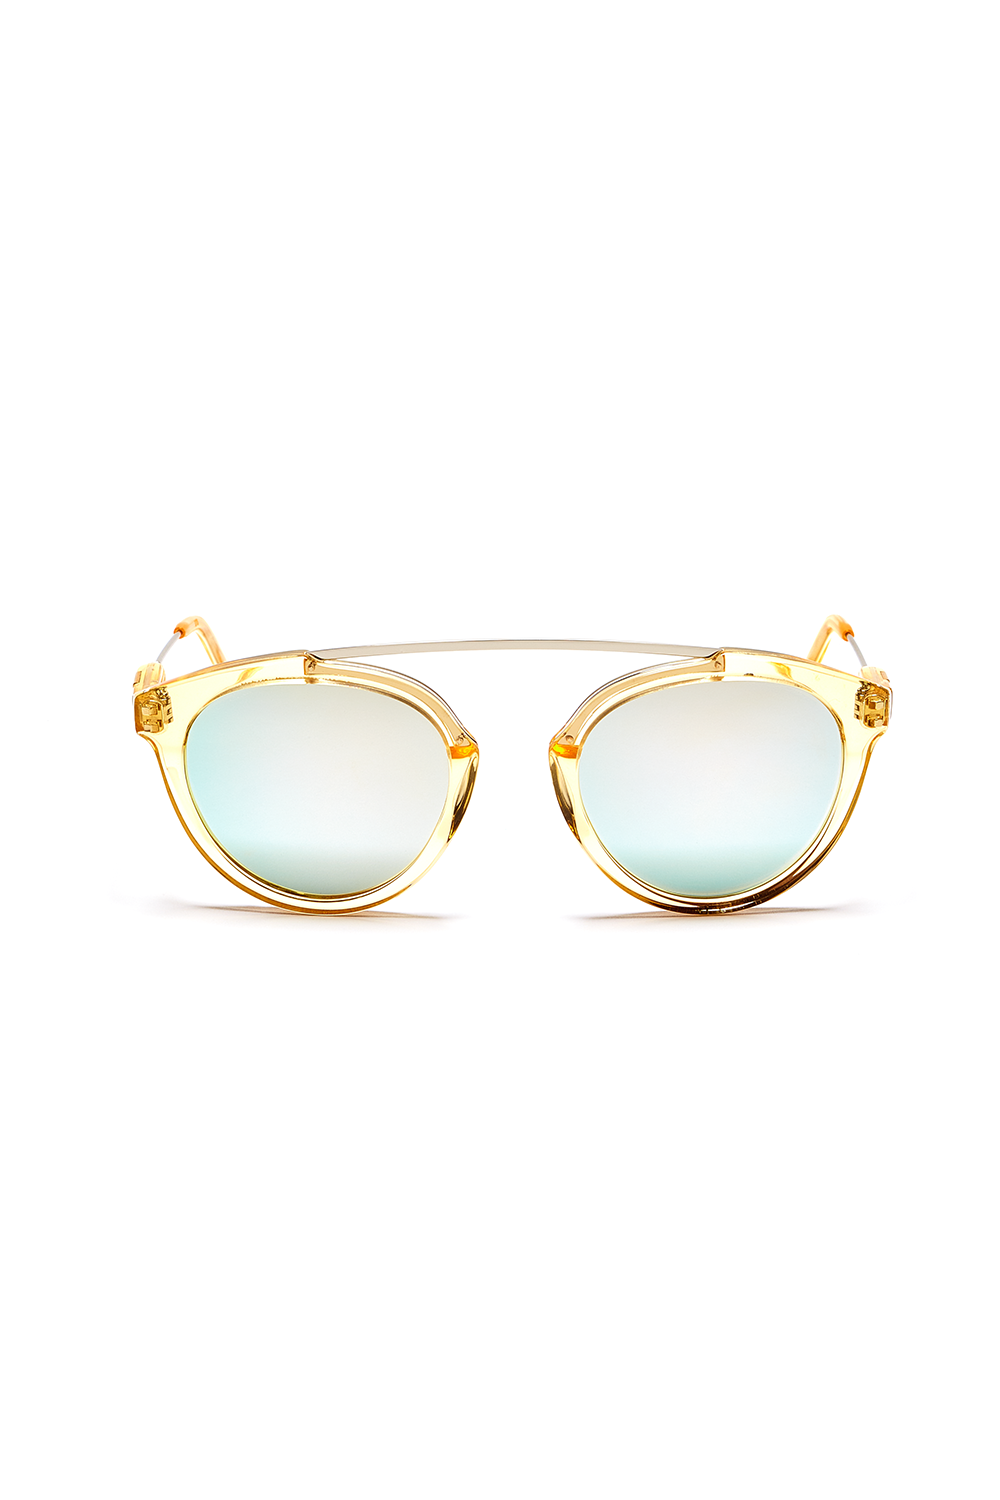 Westward Leaning Sunnies $225